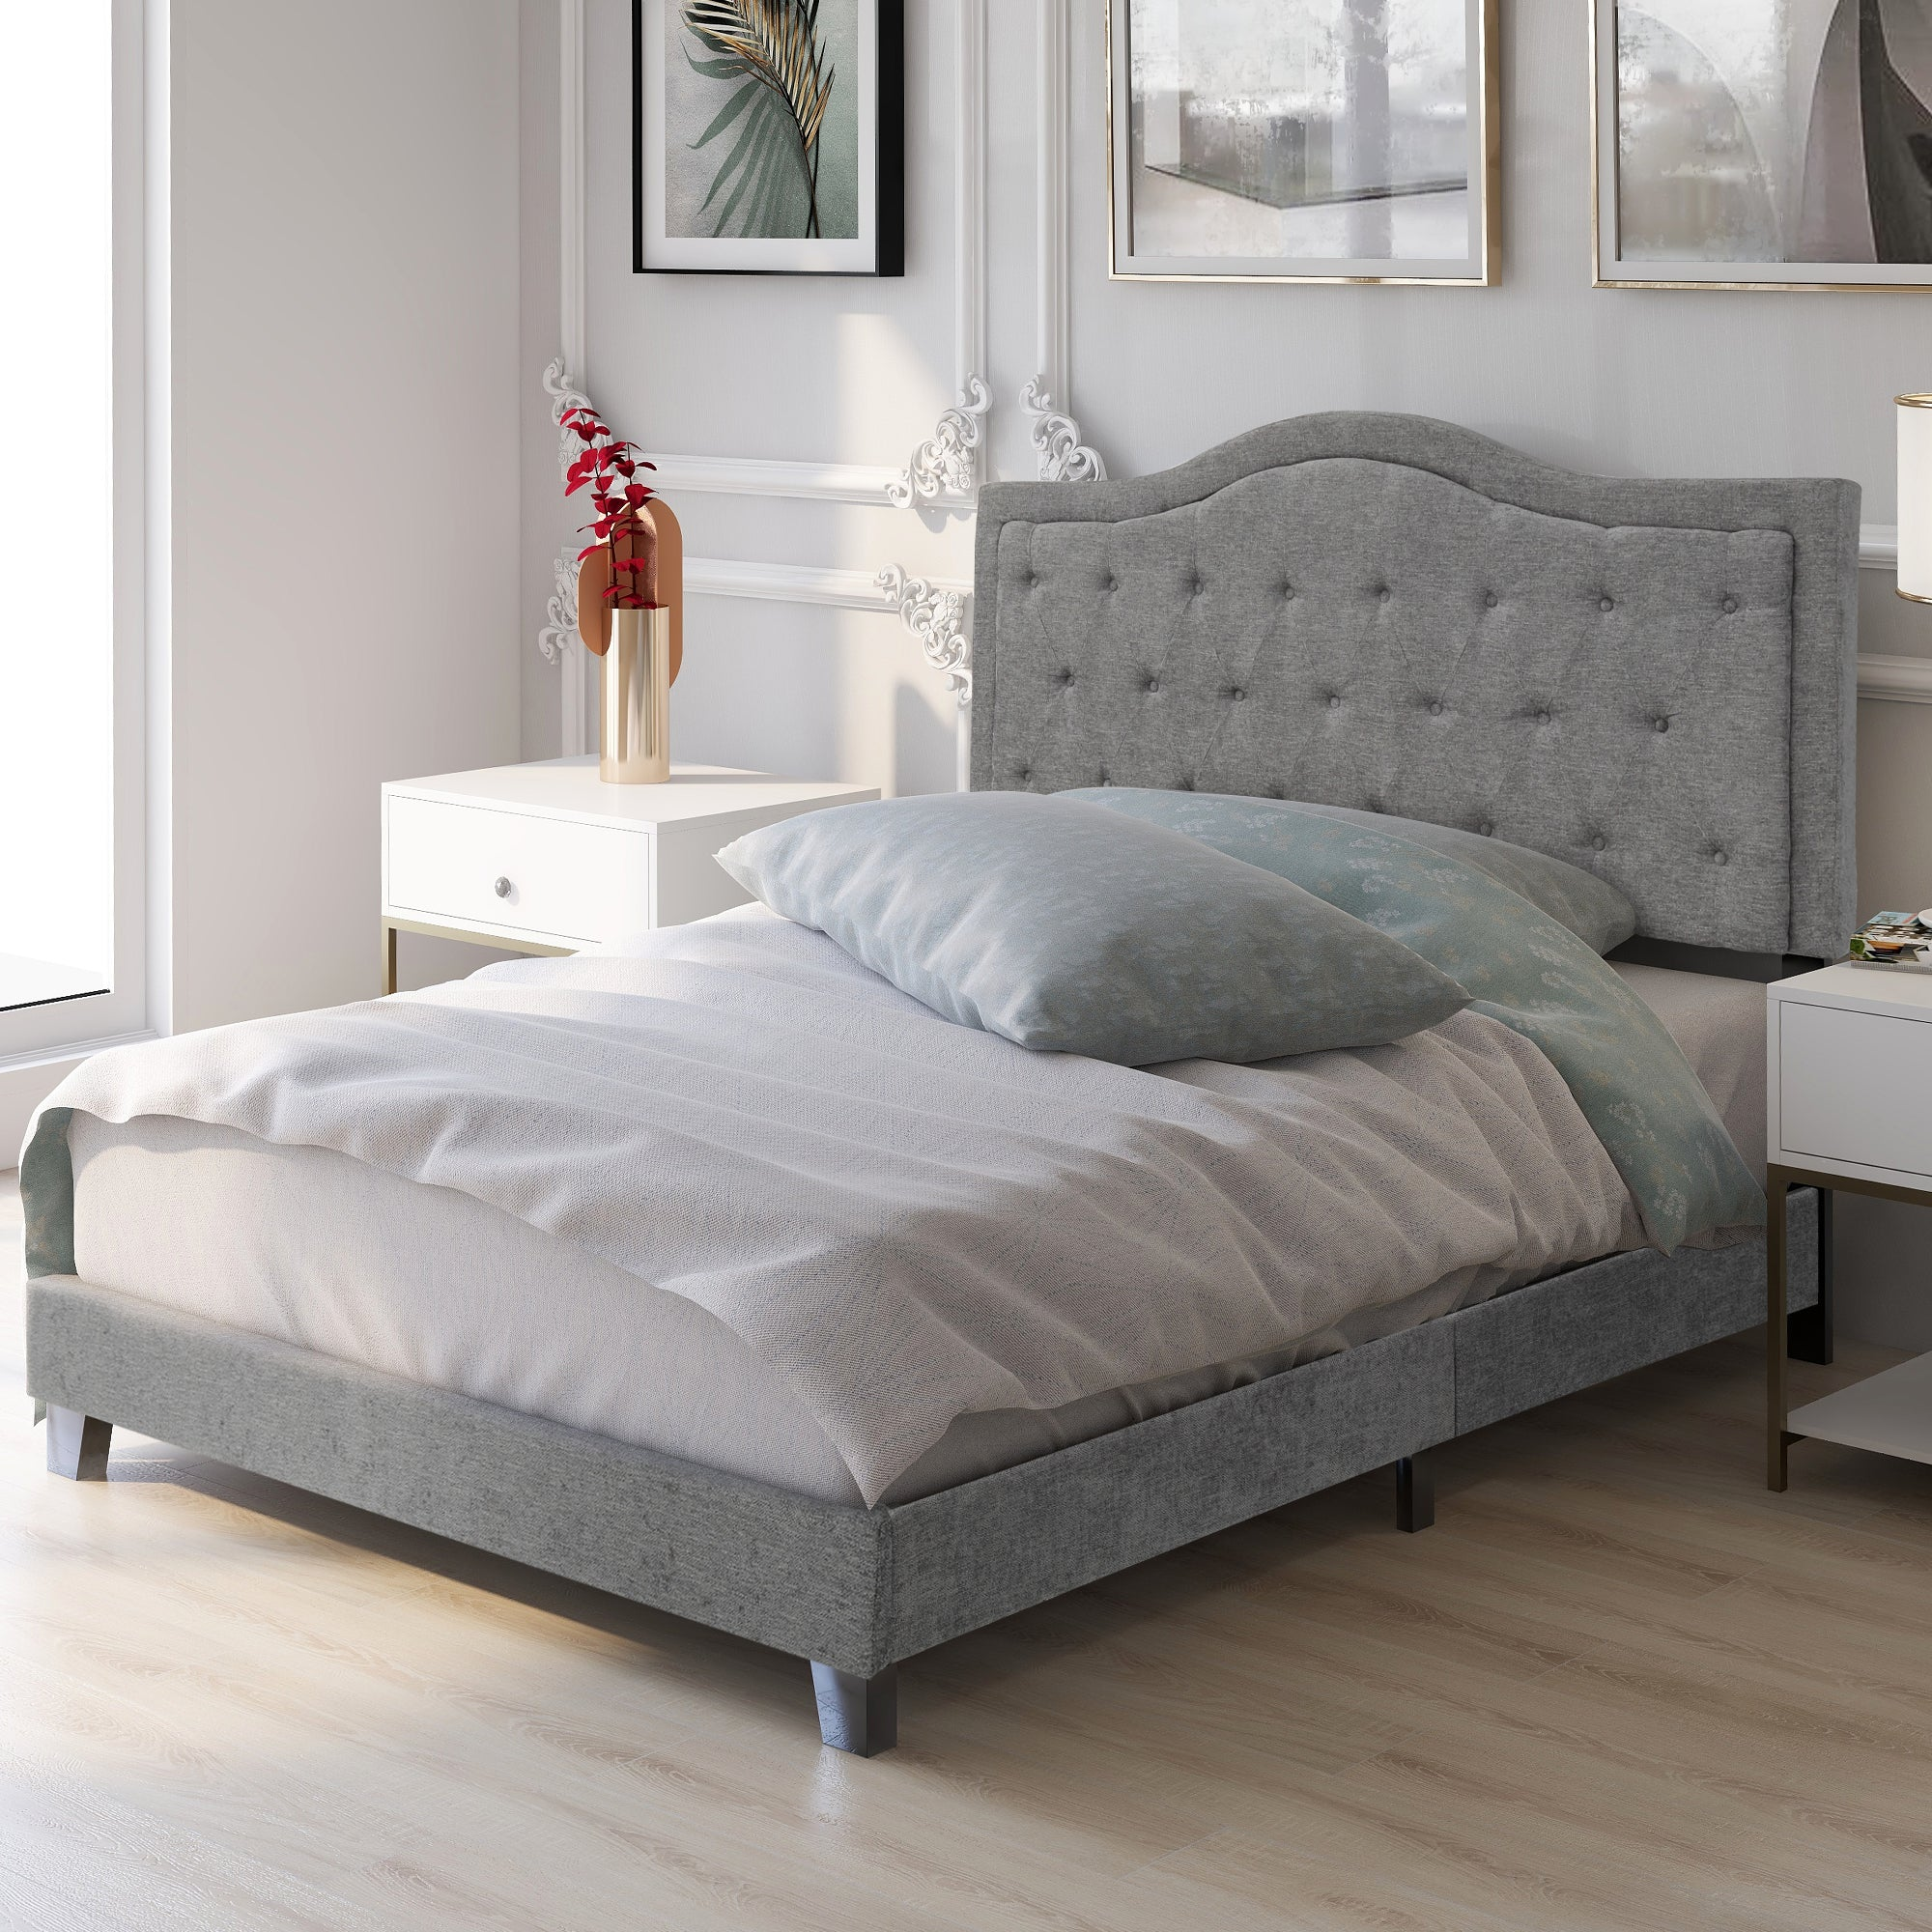 Classic style Upholstered Linen Grey Bed Frame